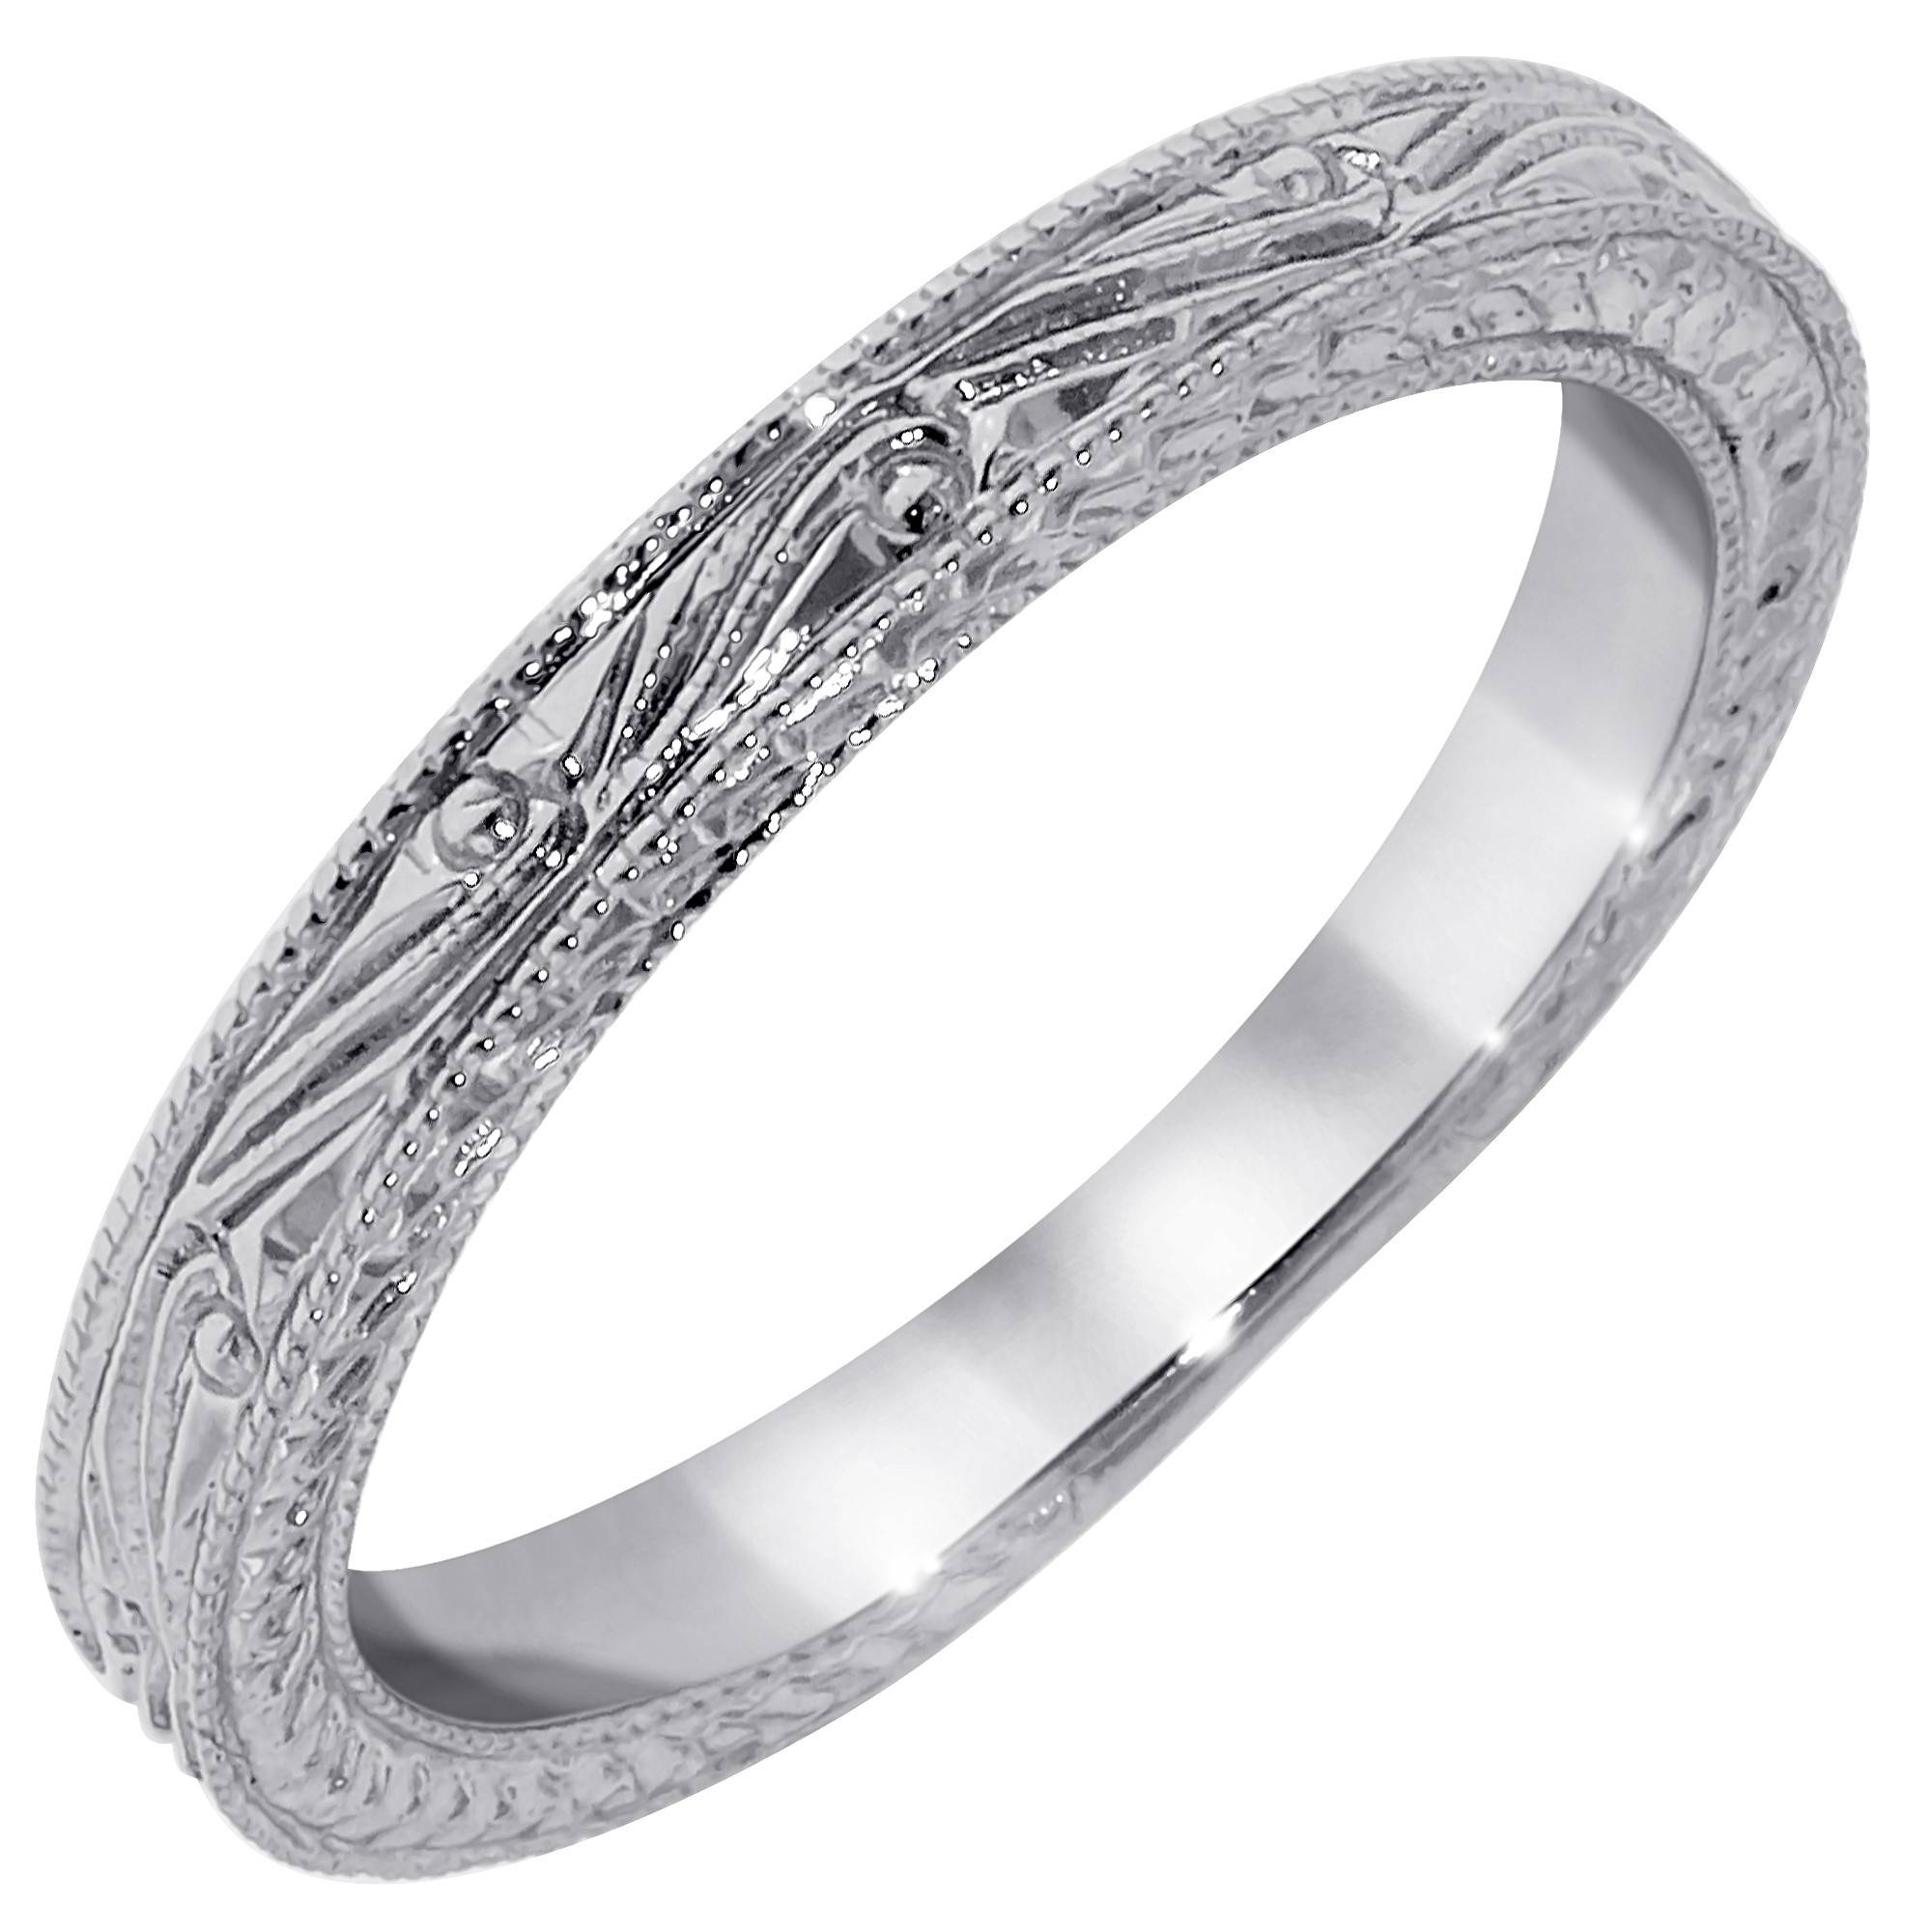 Timeless Designs Engraved Wedding Band In 14Kt White Gold Pertaining To Engrave Wedding Bands (View 10 of 15)